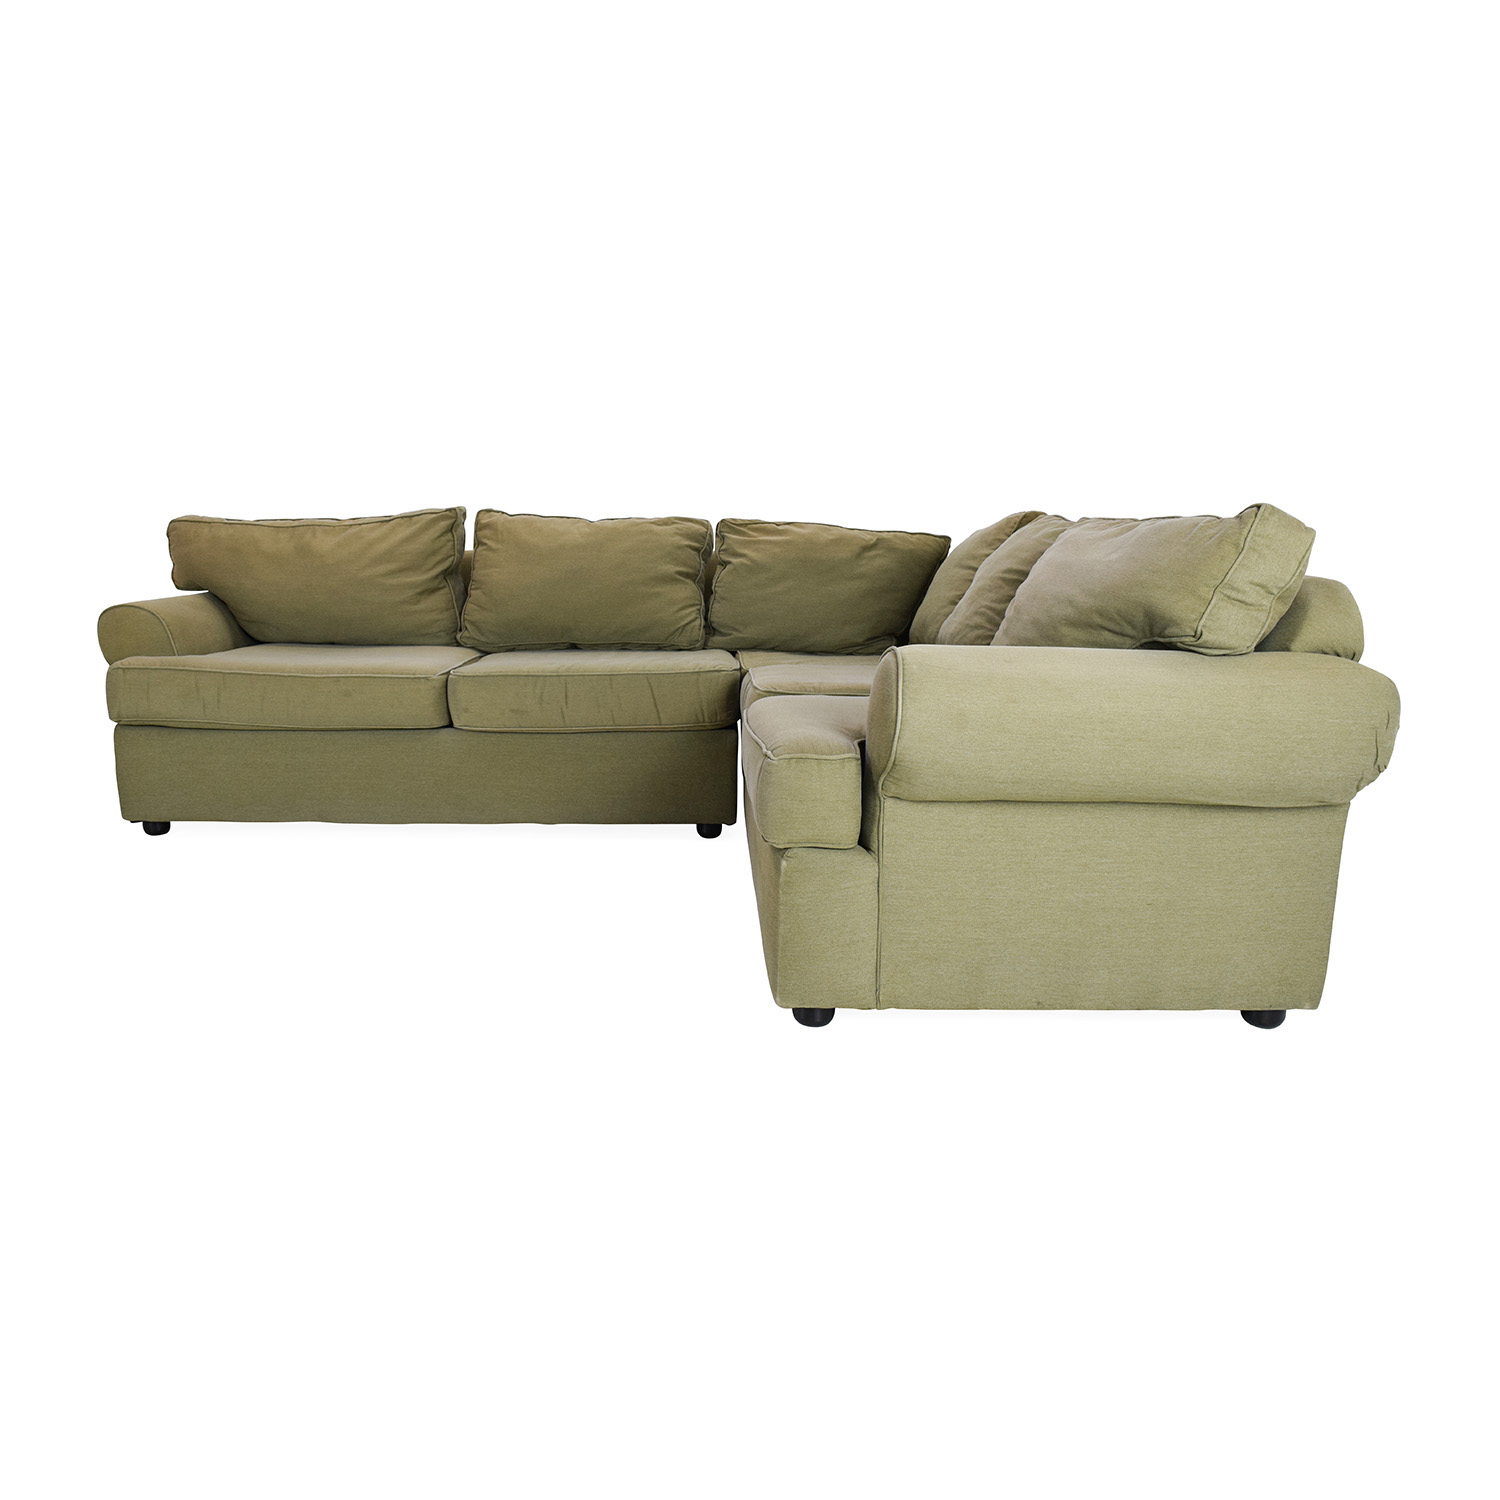 Klaussner Sectional Sofa Klaussner  sc 1 st  Furnishare : klaussner sectional sofa - Sectionals, Sofas & Couches